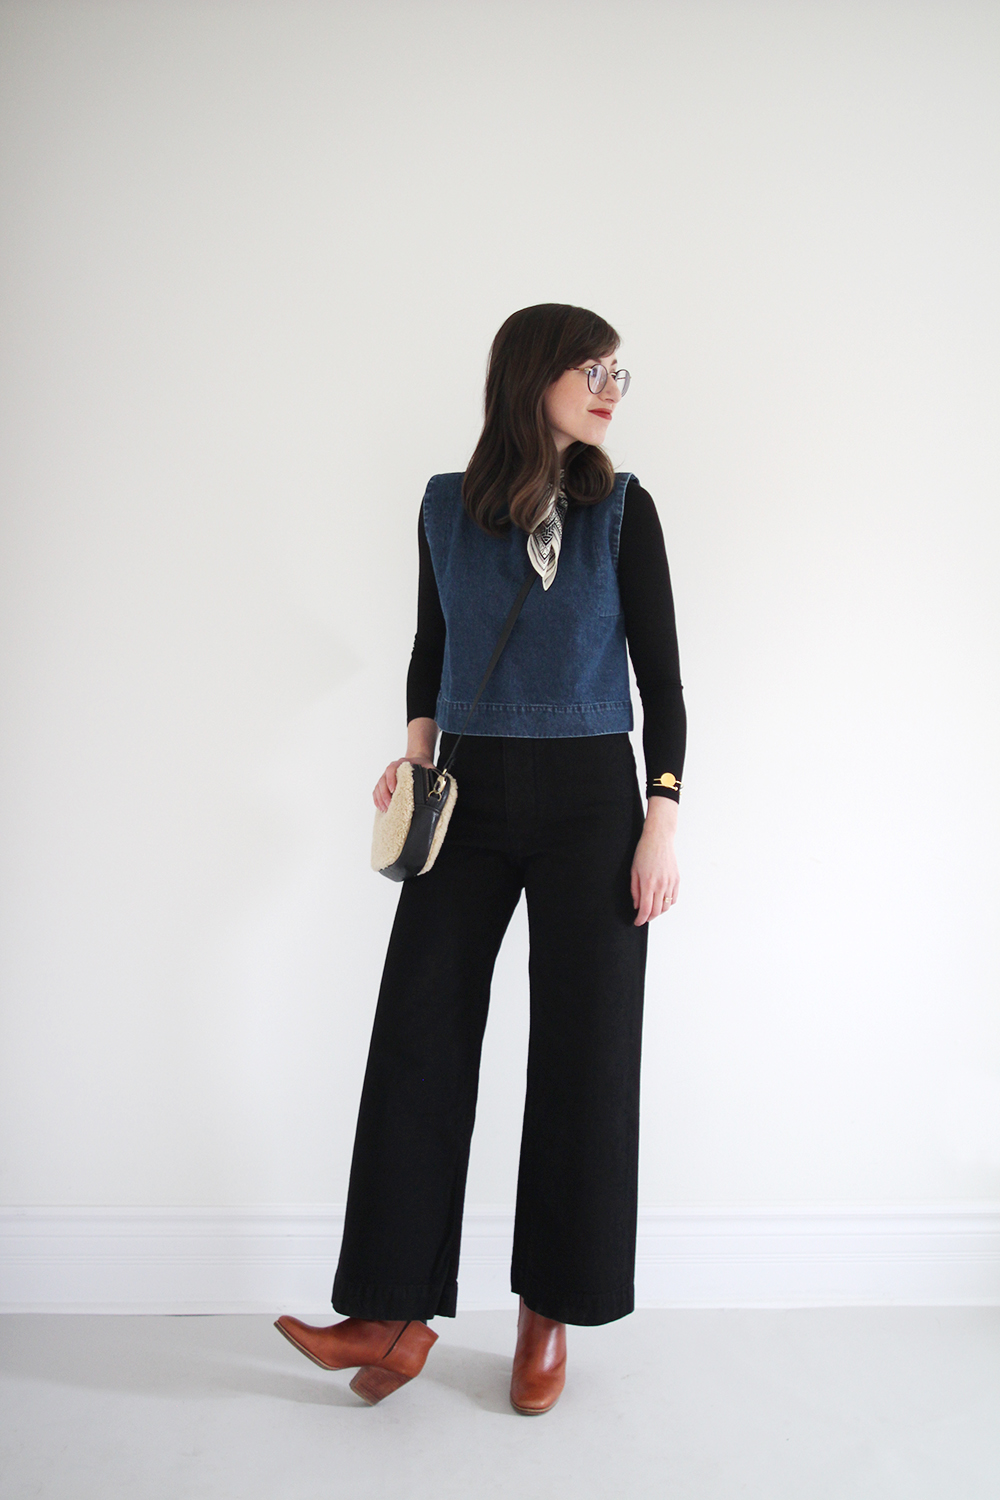 Style Bee - Black Friday Finds